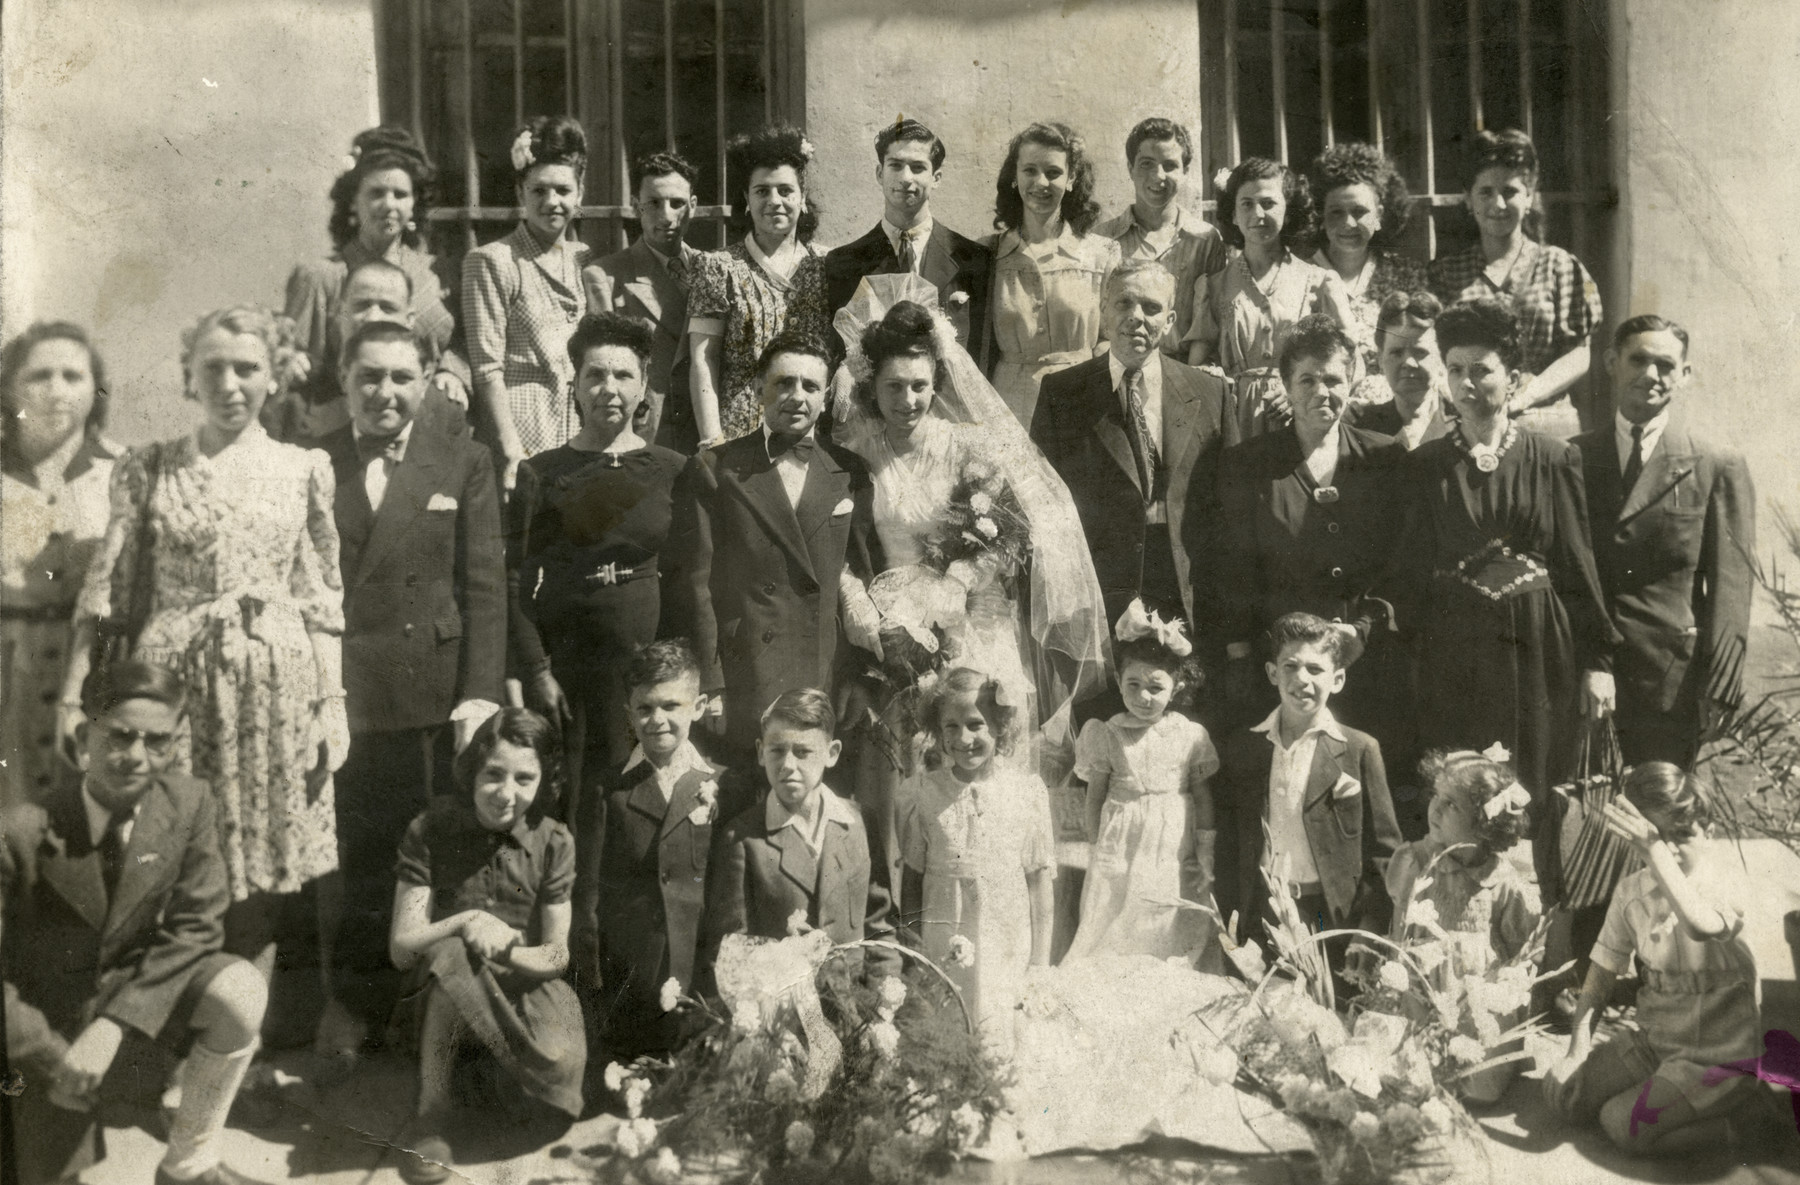 Wedding portraitof Suzanne Romano and Jacques (Jaakov) Levy.  Shimon and Regine Romano are to the right of the bride.  The groom's mother (a widow) is standing next to him.  Pictured standing in the center are Leon Levi (a cousin) and the donor, Camille Romano.